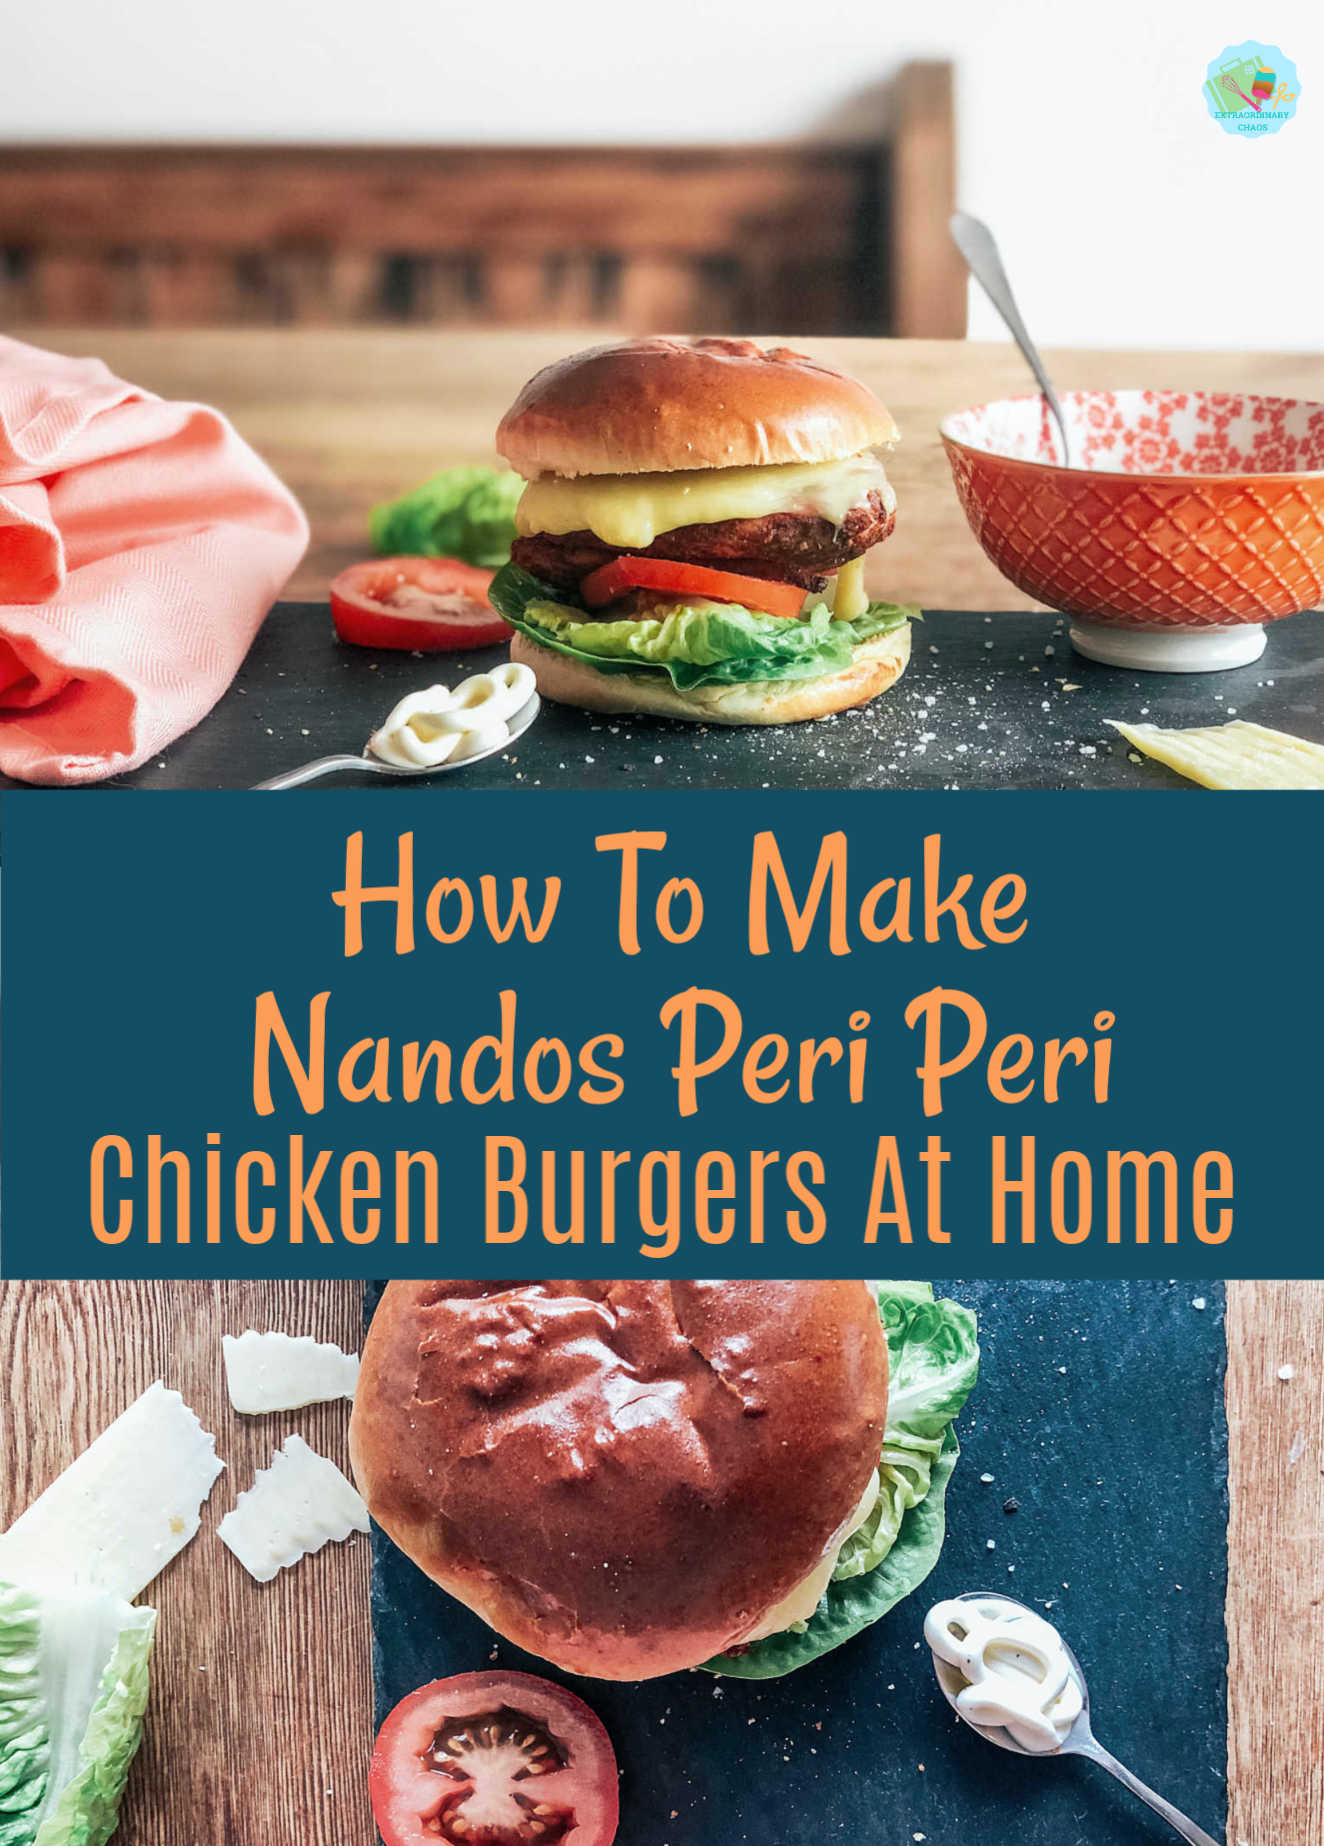 How To Make Nandos Peri Peri Chicken Burgers At Home